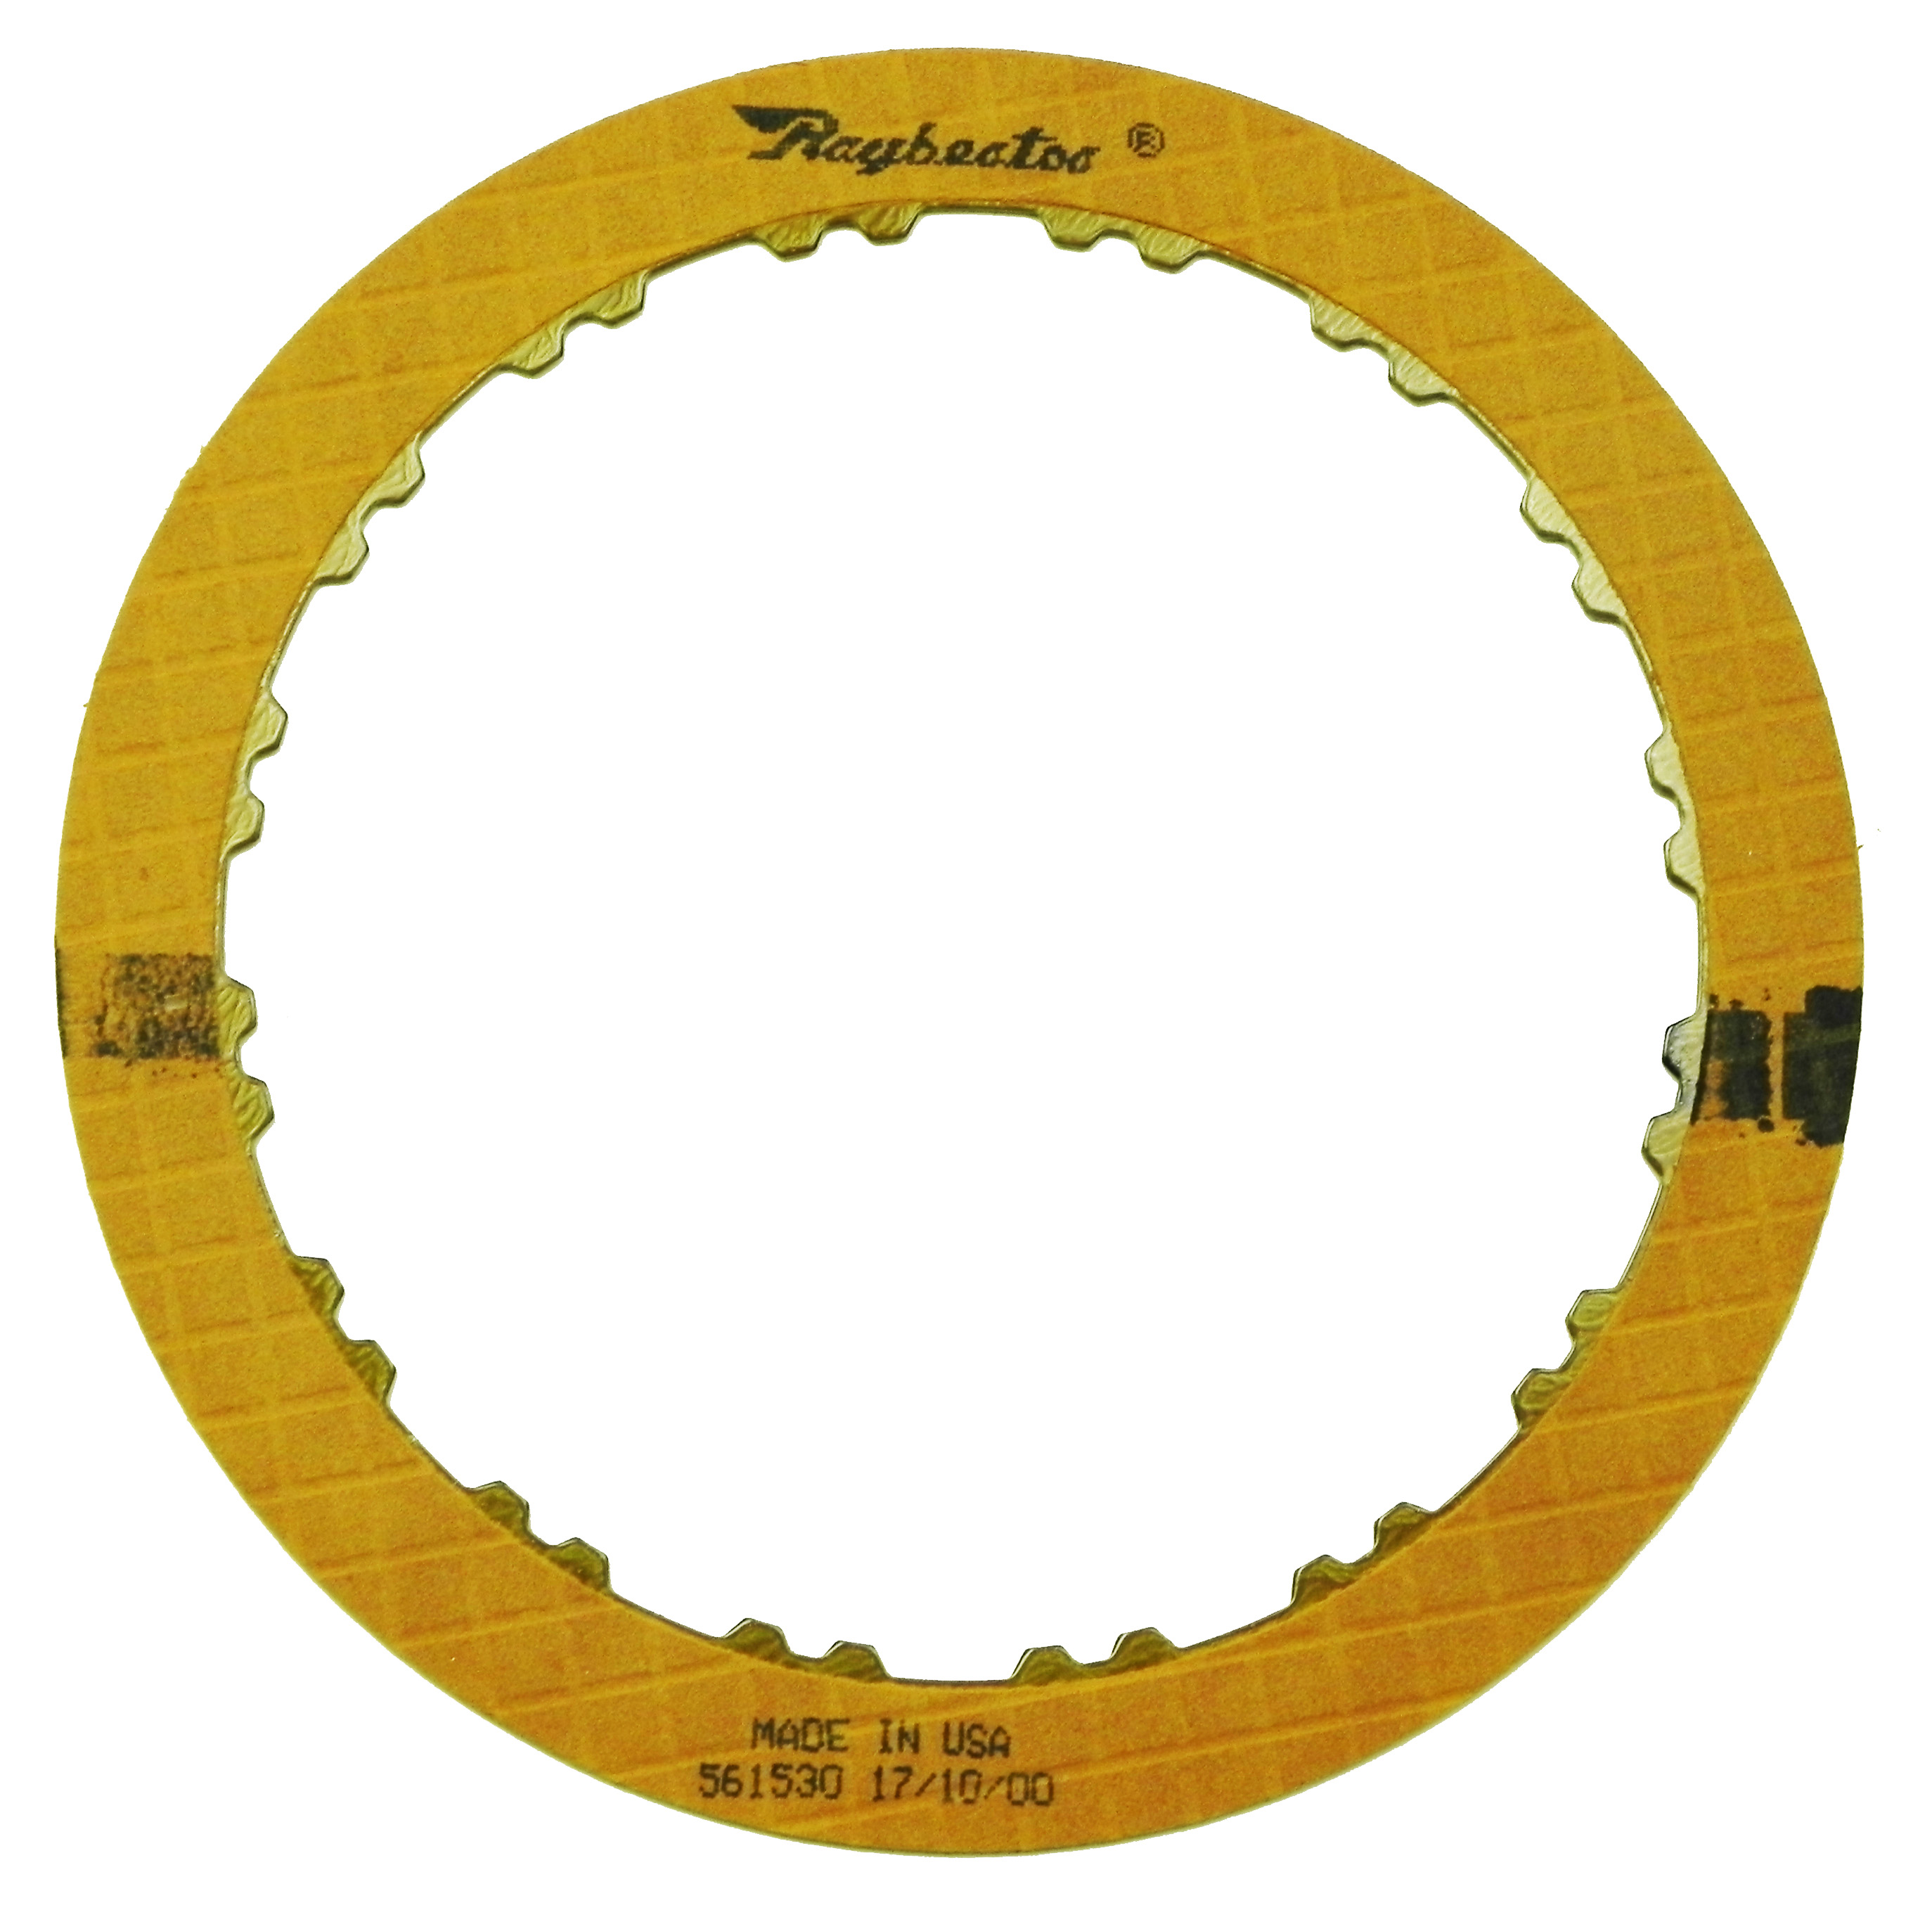 R561530   1990-ON Friction Clutch Plate OE Replacement Overdrive